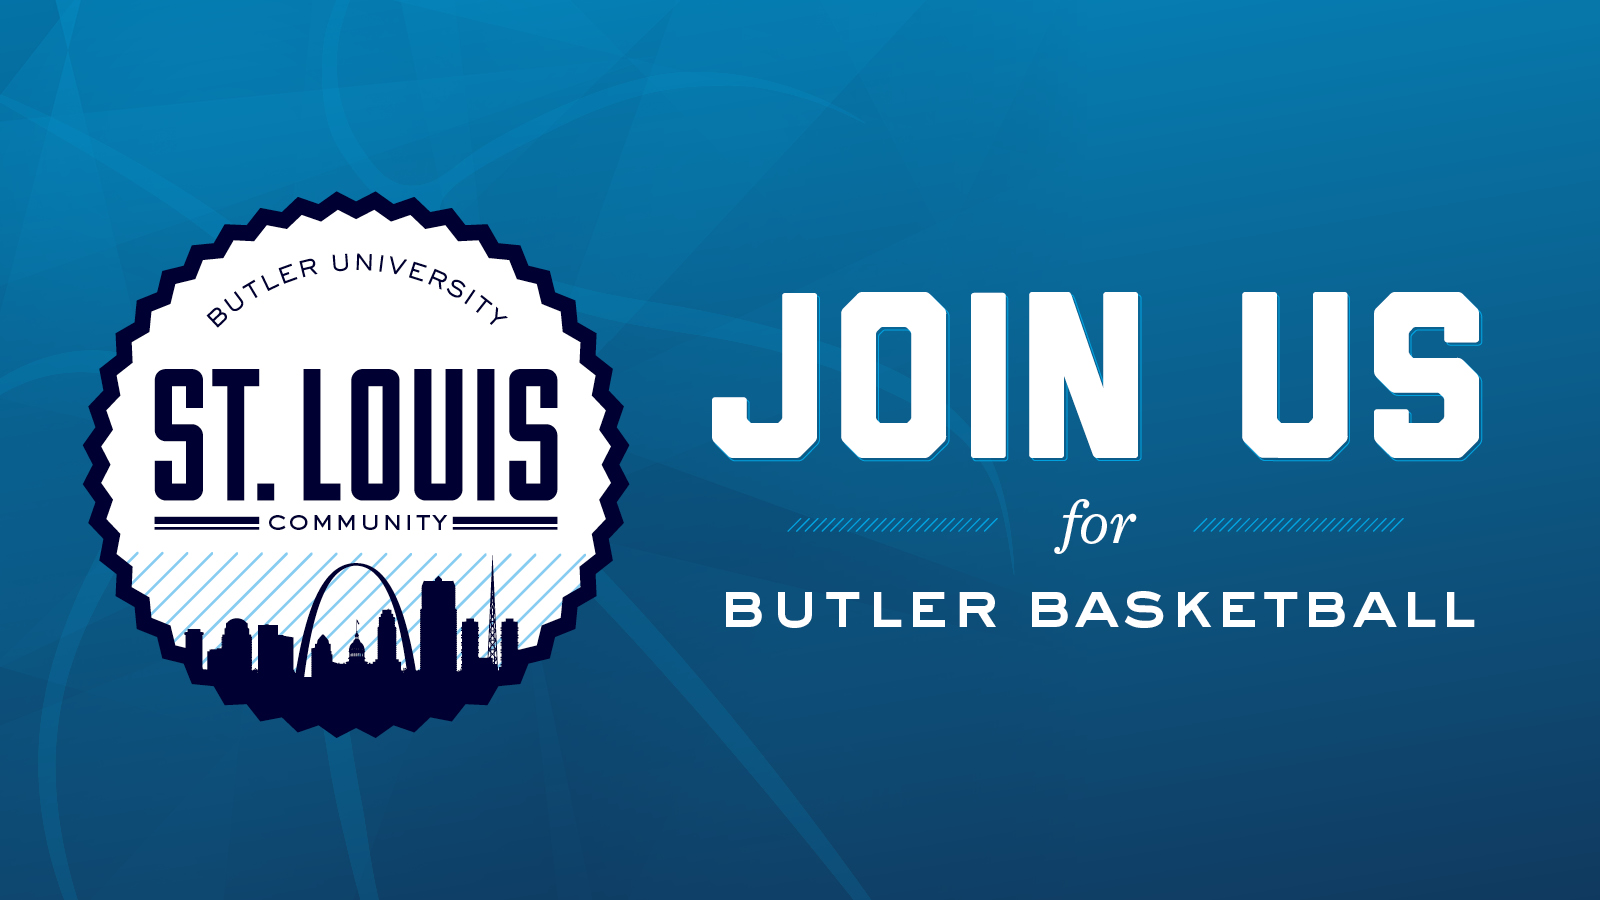 St. Louis Alumni Fan Gathering: Butler vs. Providence